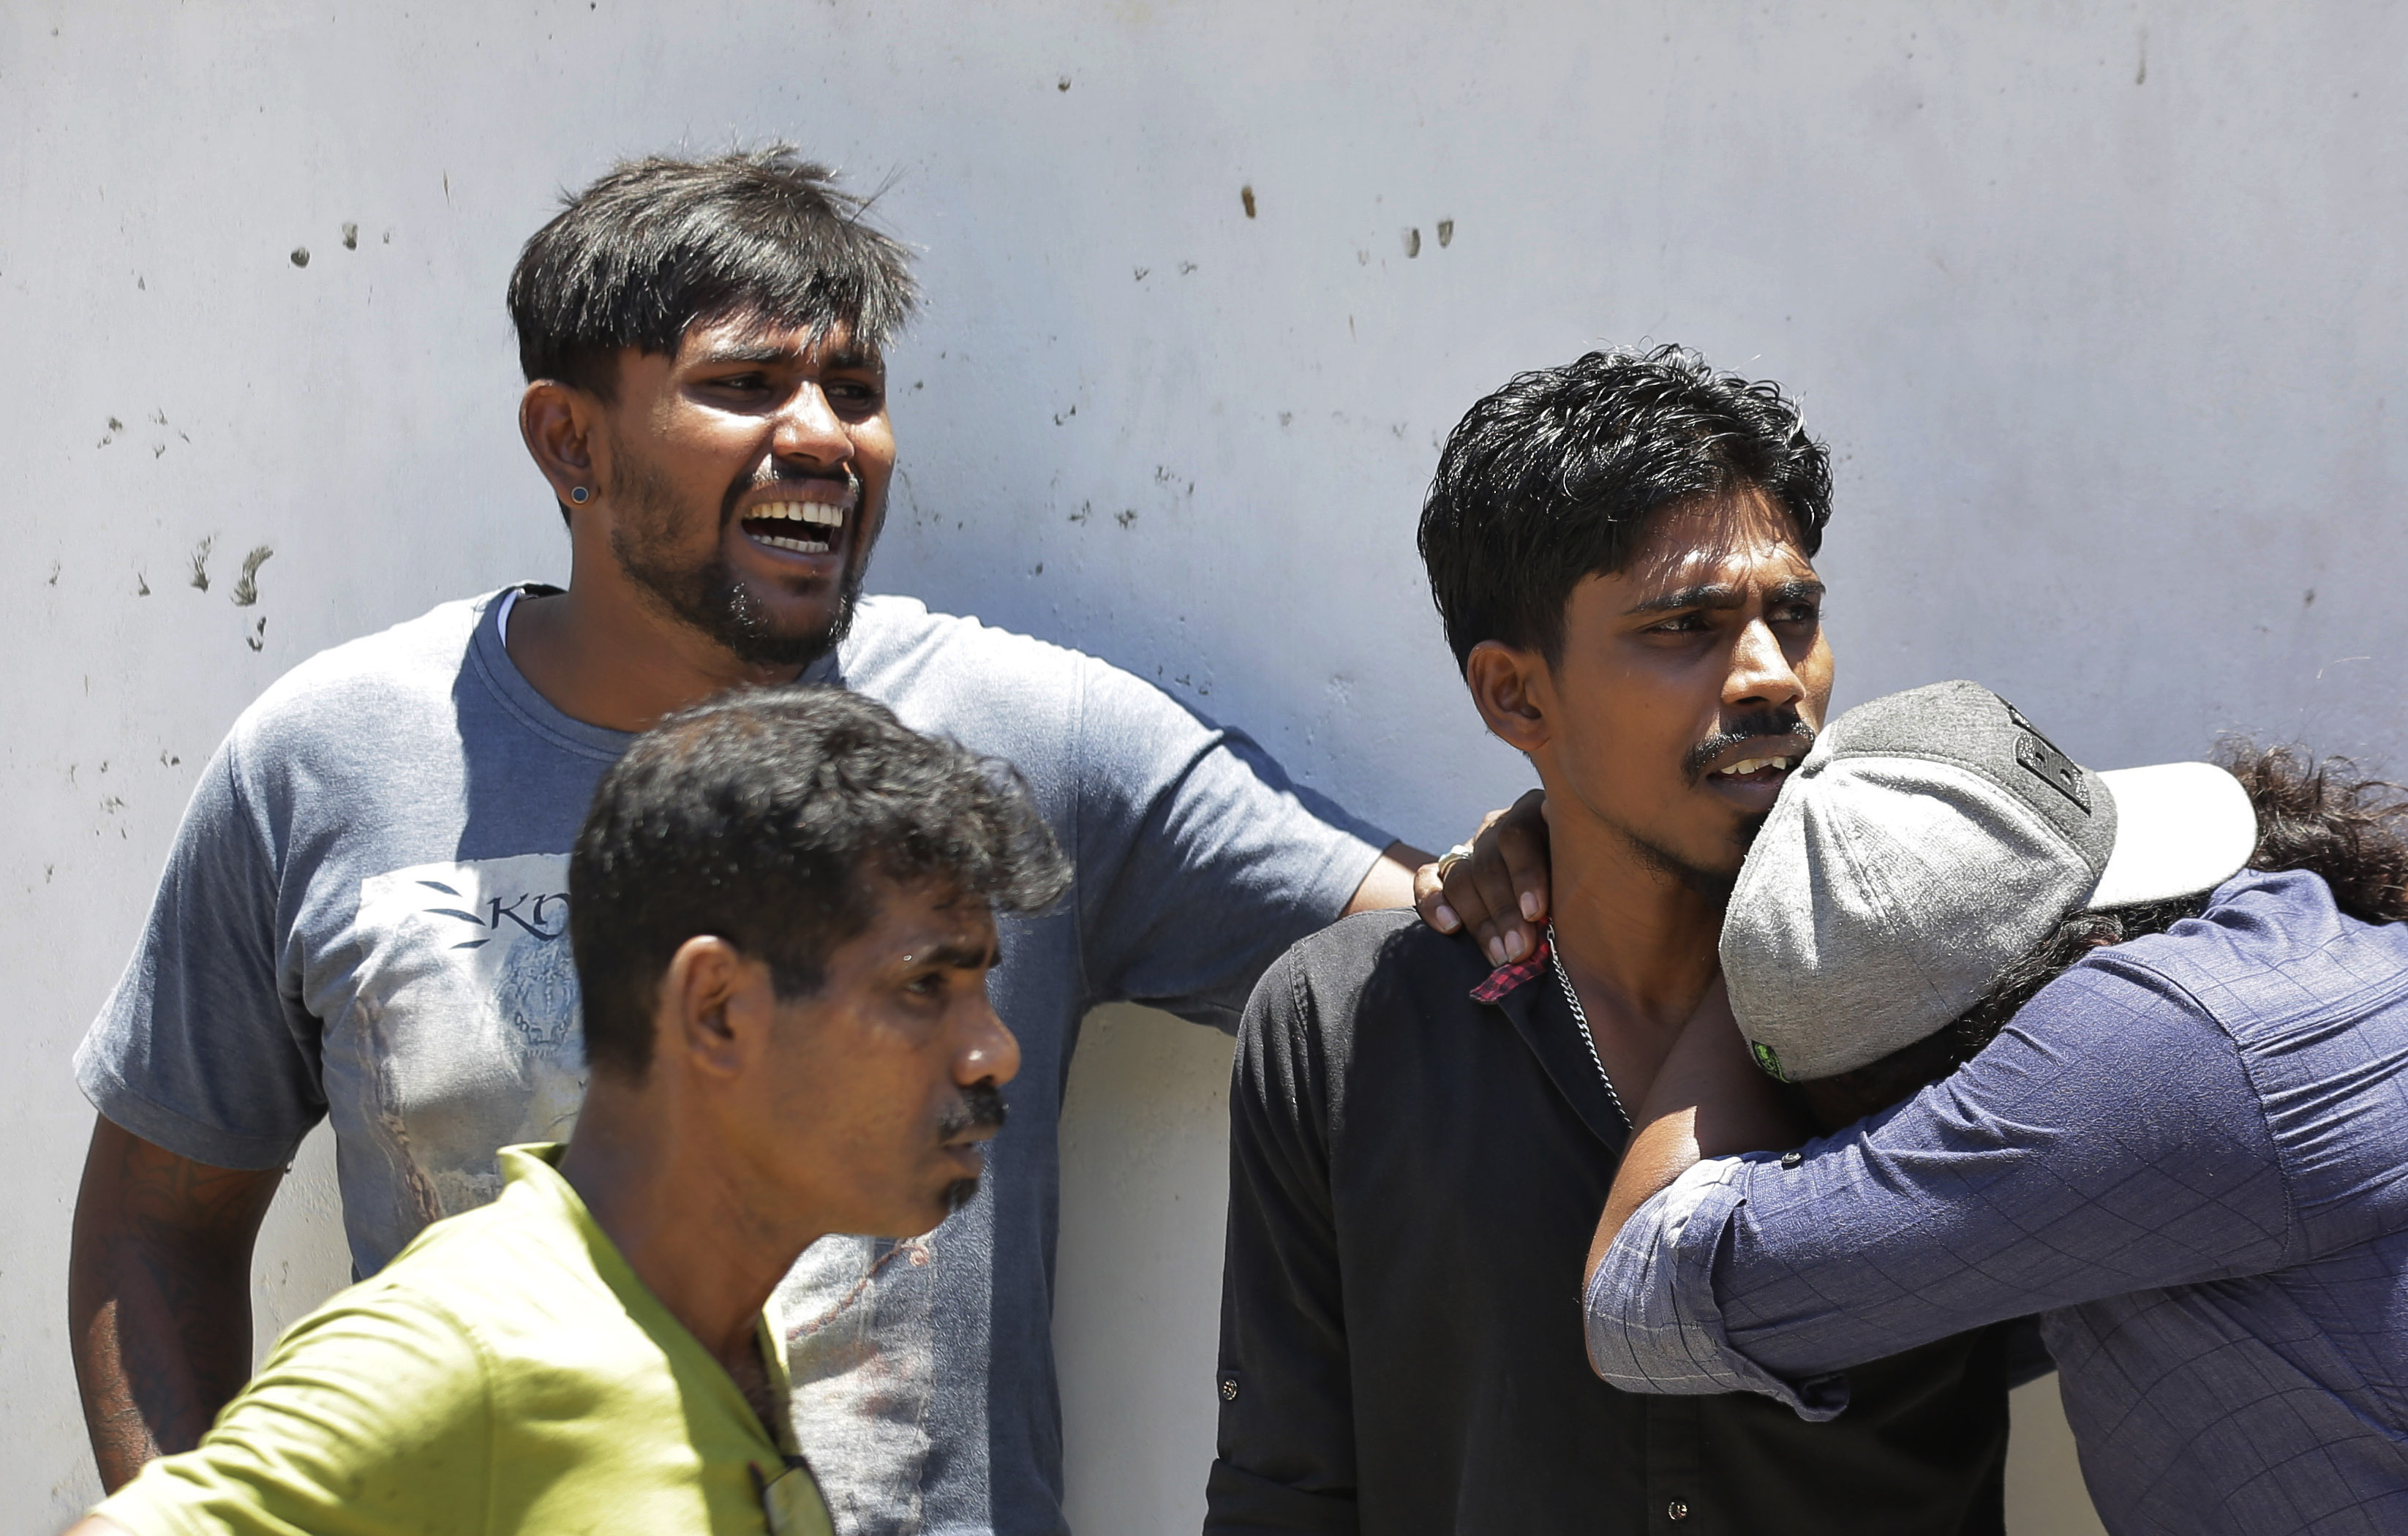 Relatives of a blast victim weep outside a police morgue in Colombo, Sri Lanka, Sunday, April 21, 2019. More than two hundred people were killed and hundreds more injured in eight blasts that rocked churches and hotels in and just outside Sri Lanka's capital on Easter Sunday.